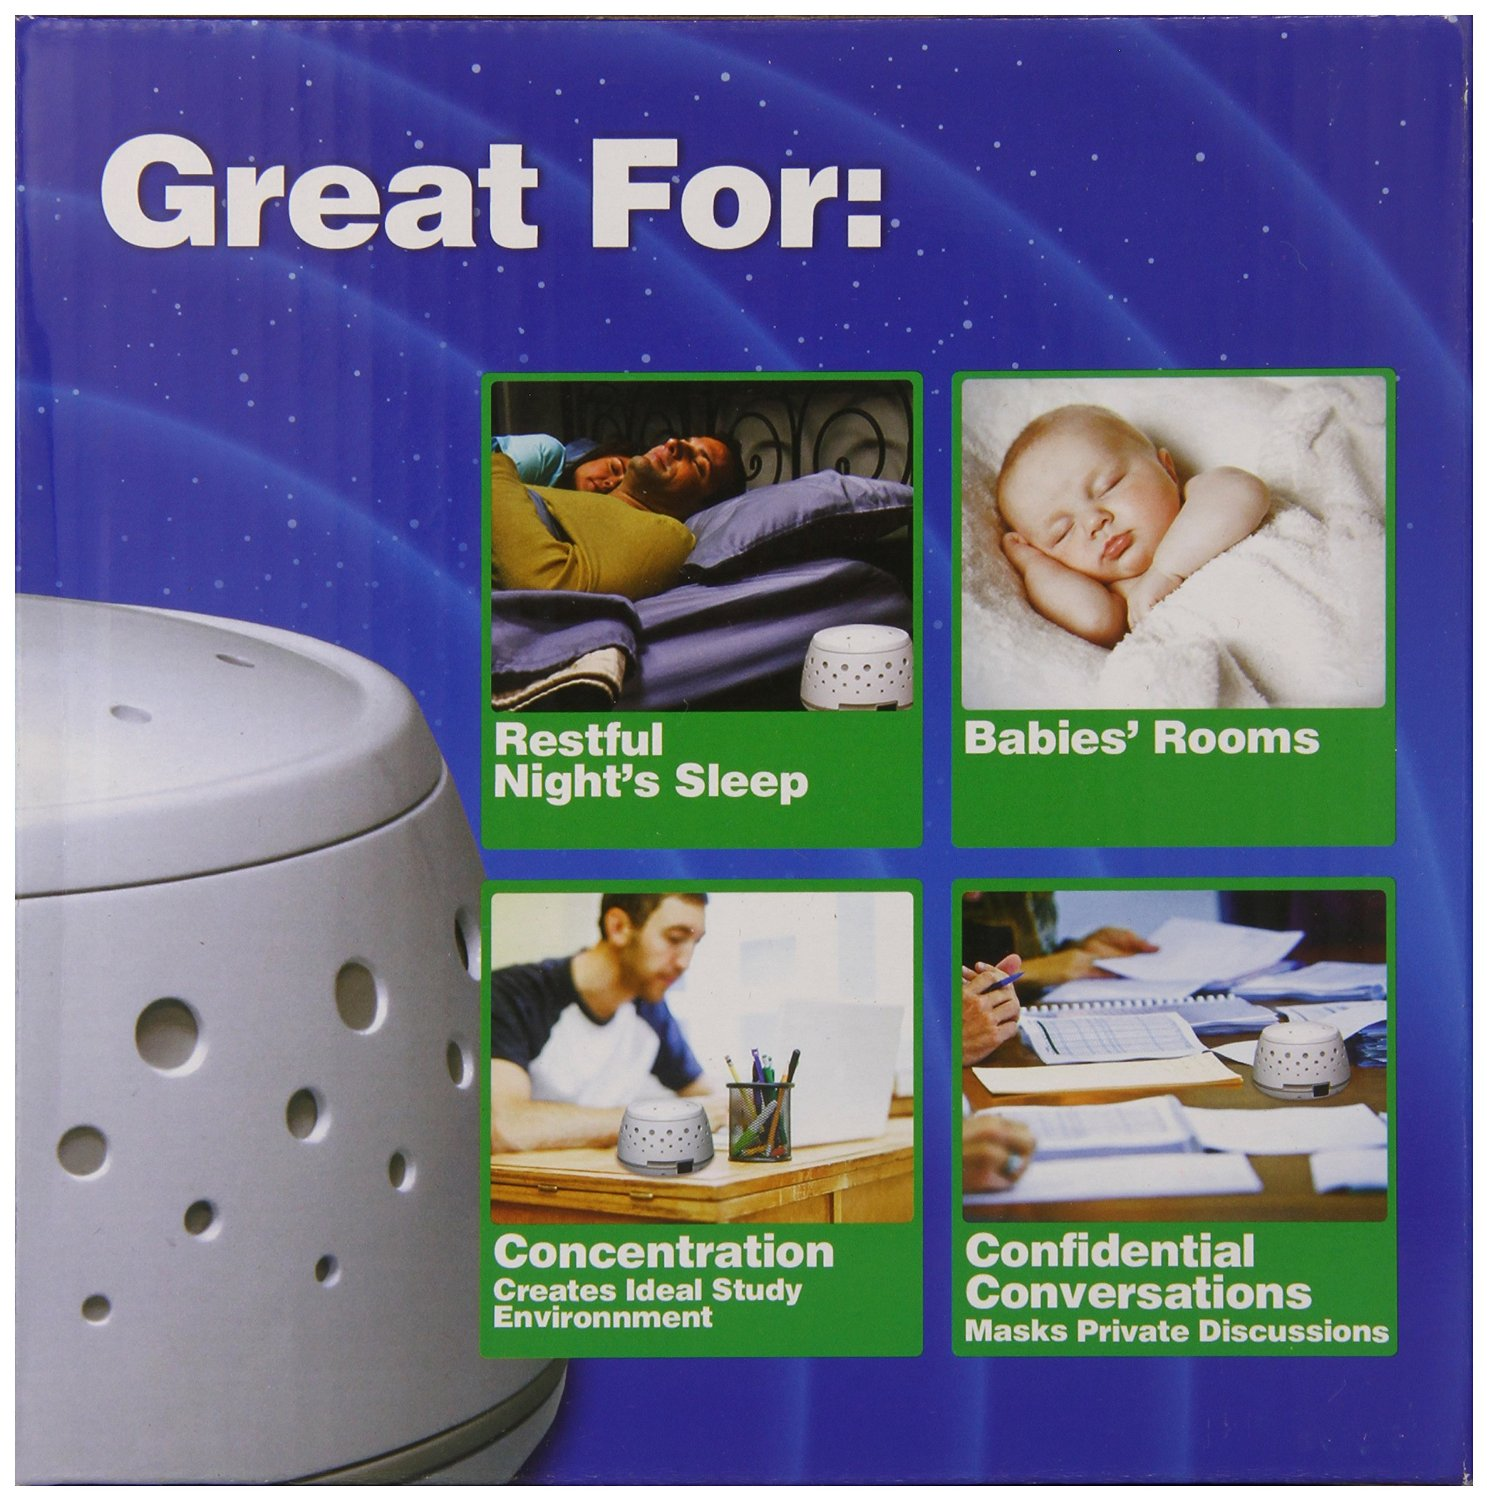 Better Sleep White Noise Sound Machine For Adults And: Sleep Easy Sound Conditioner